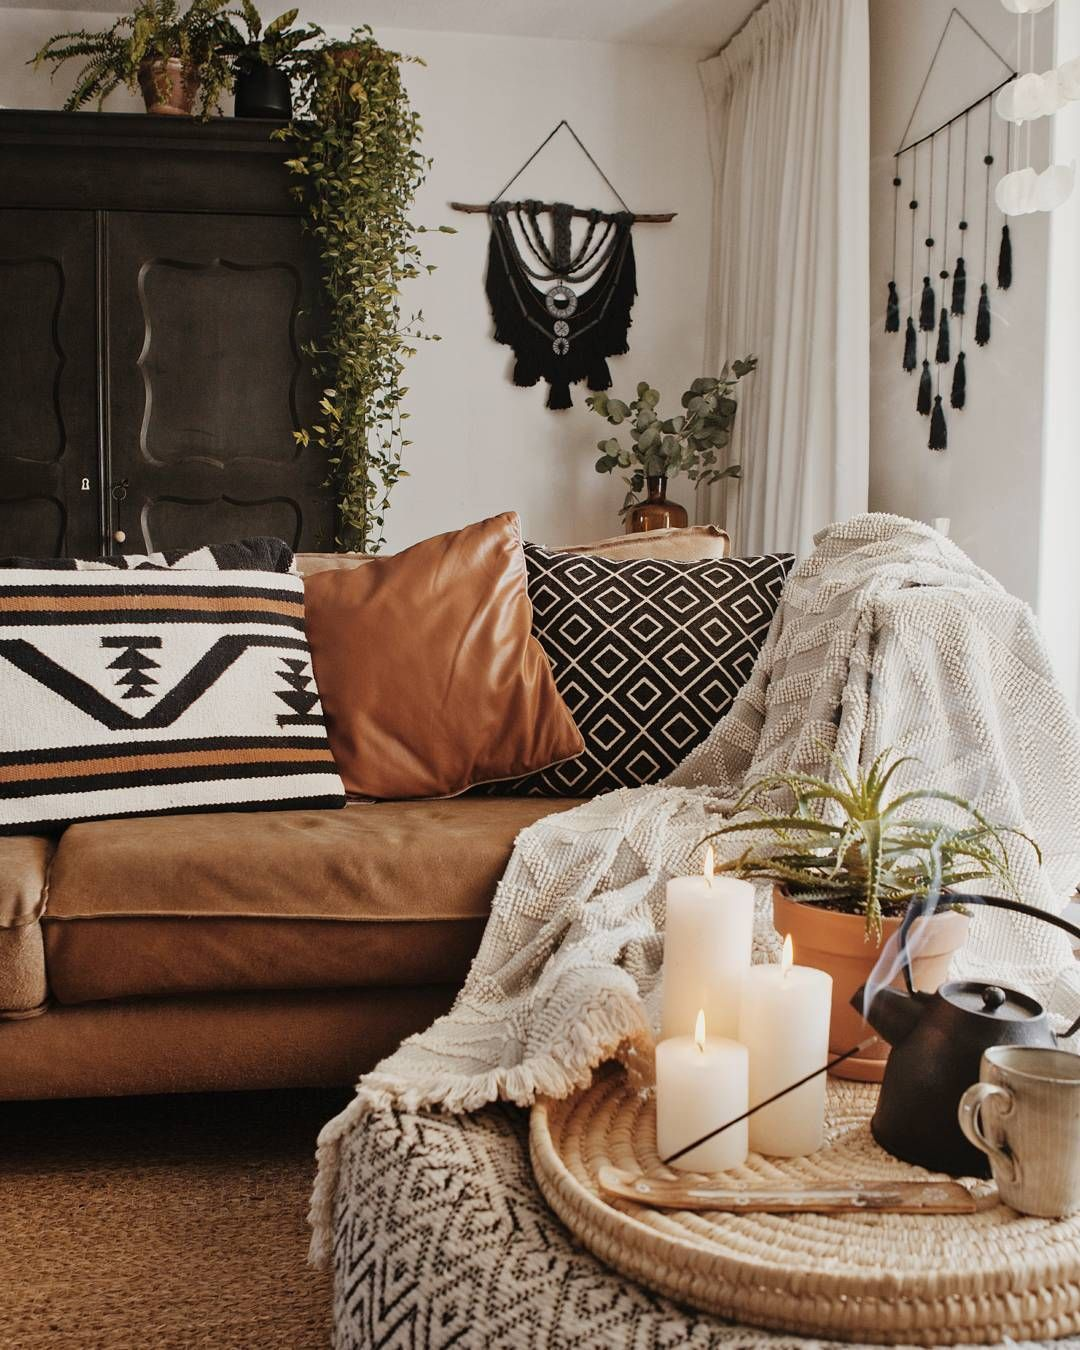 Rancho Sierra Apartments: 9 Inspiring Cozy Apartment Decor On Budget